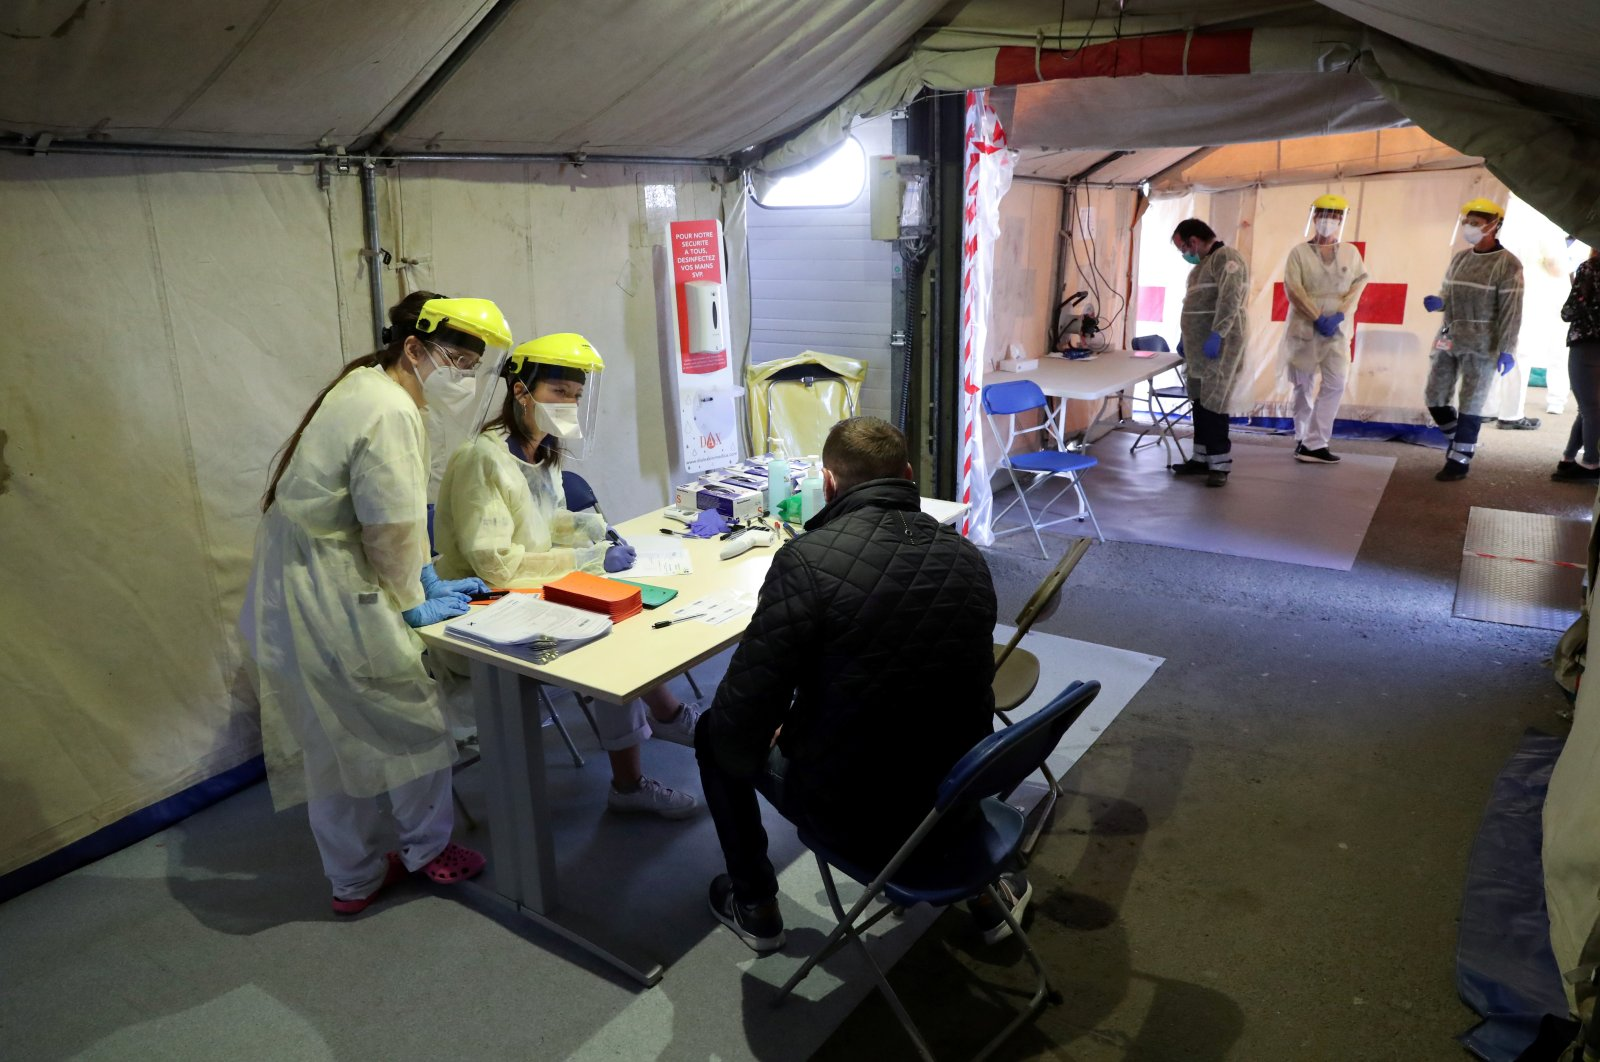 Members of medical personnel prepare before testing a person for the coronavirus disease (COVID-19) at the testing site of the Erasme Hospital in Brussels, Belgium, Monday, March 30, 2020.  (Reuters Photo)